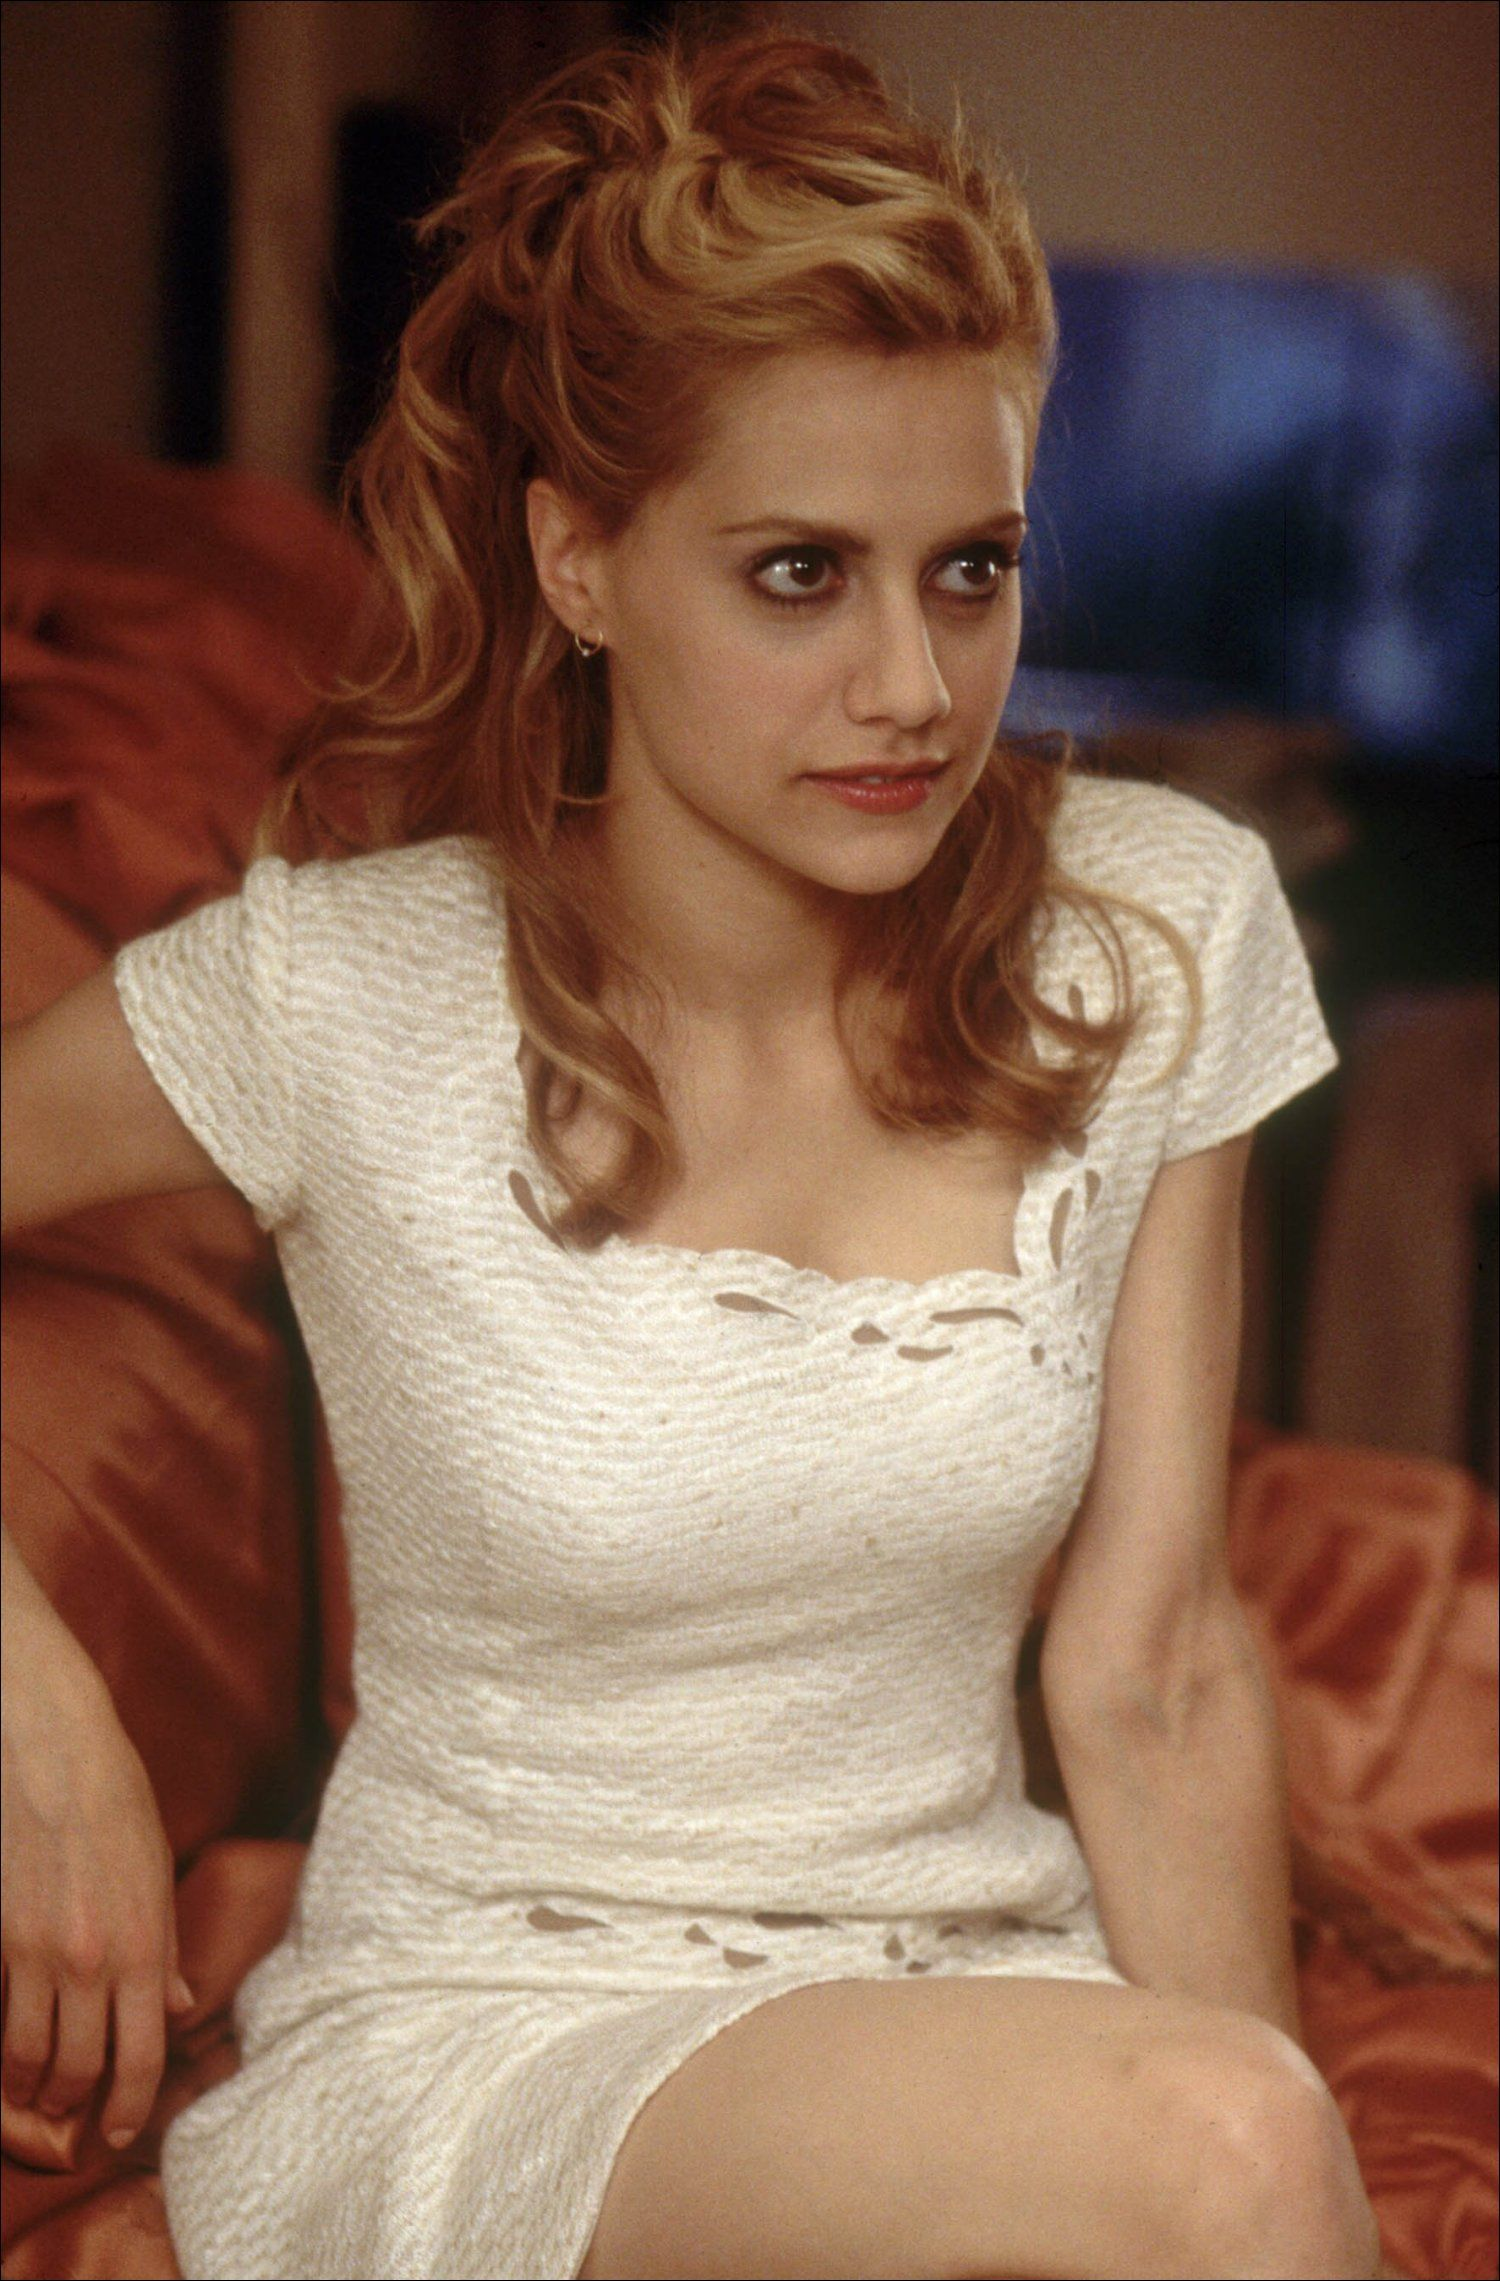 Nude pics of brittany murphy